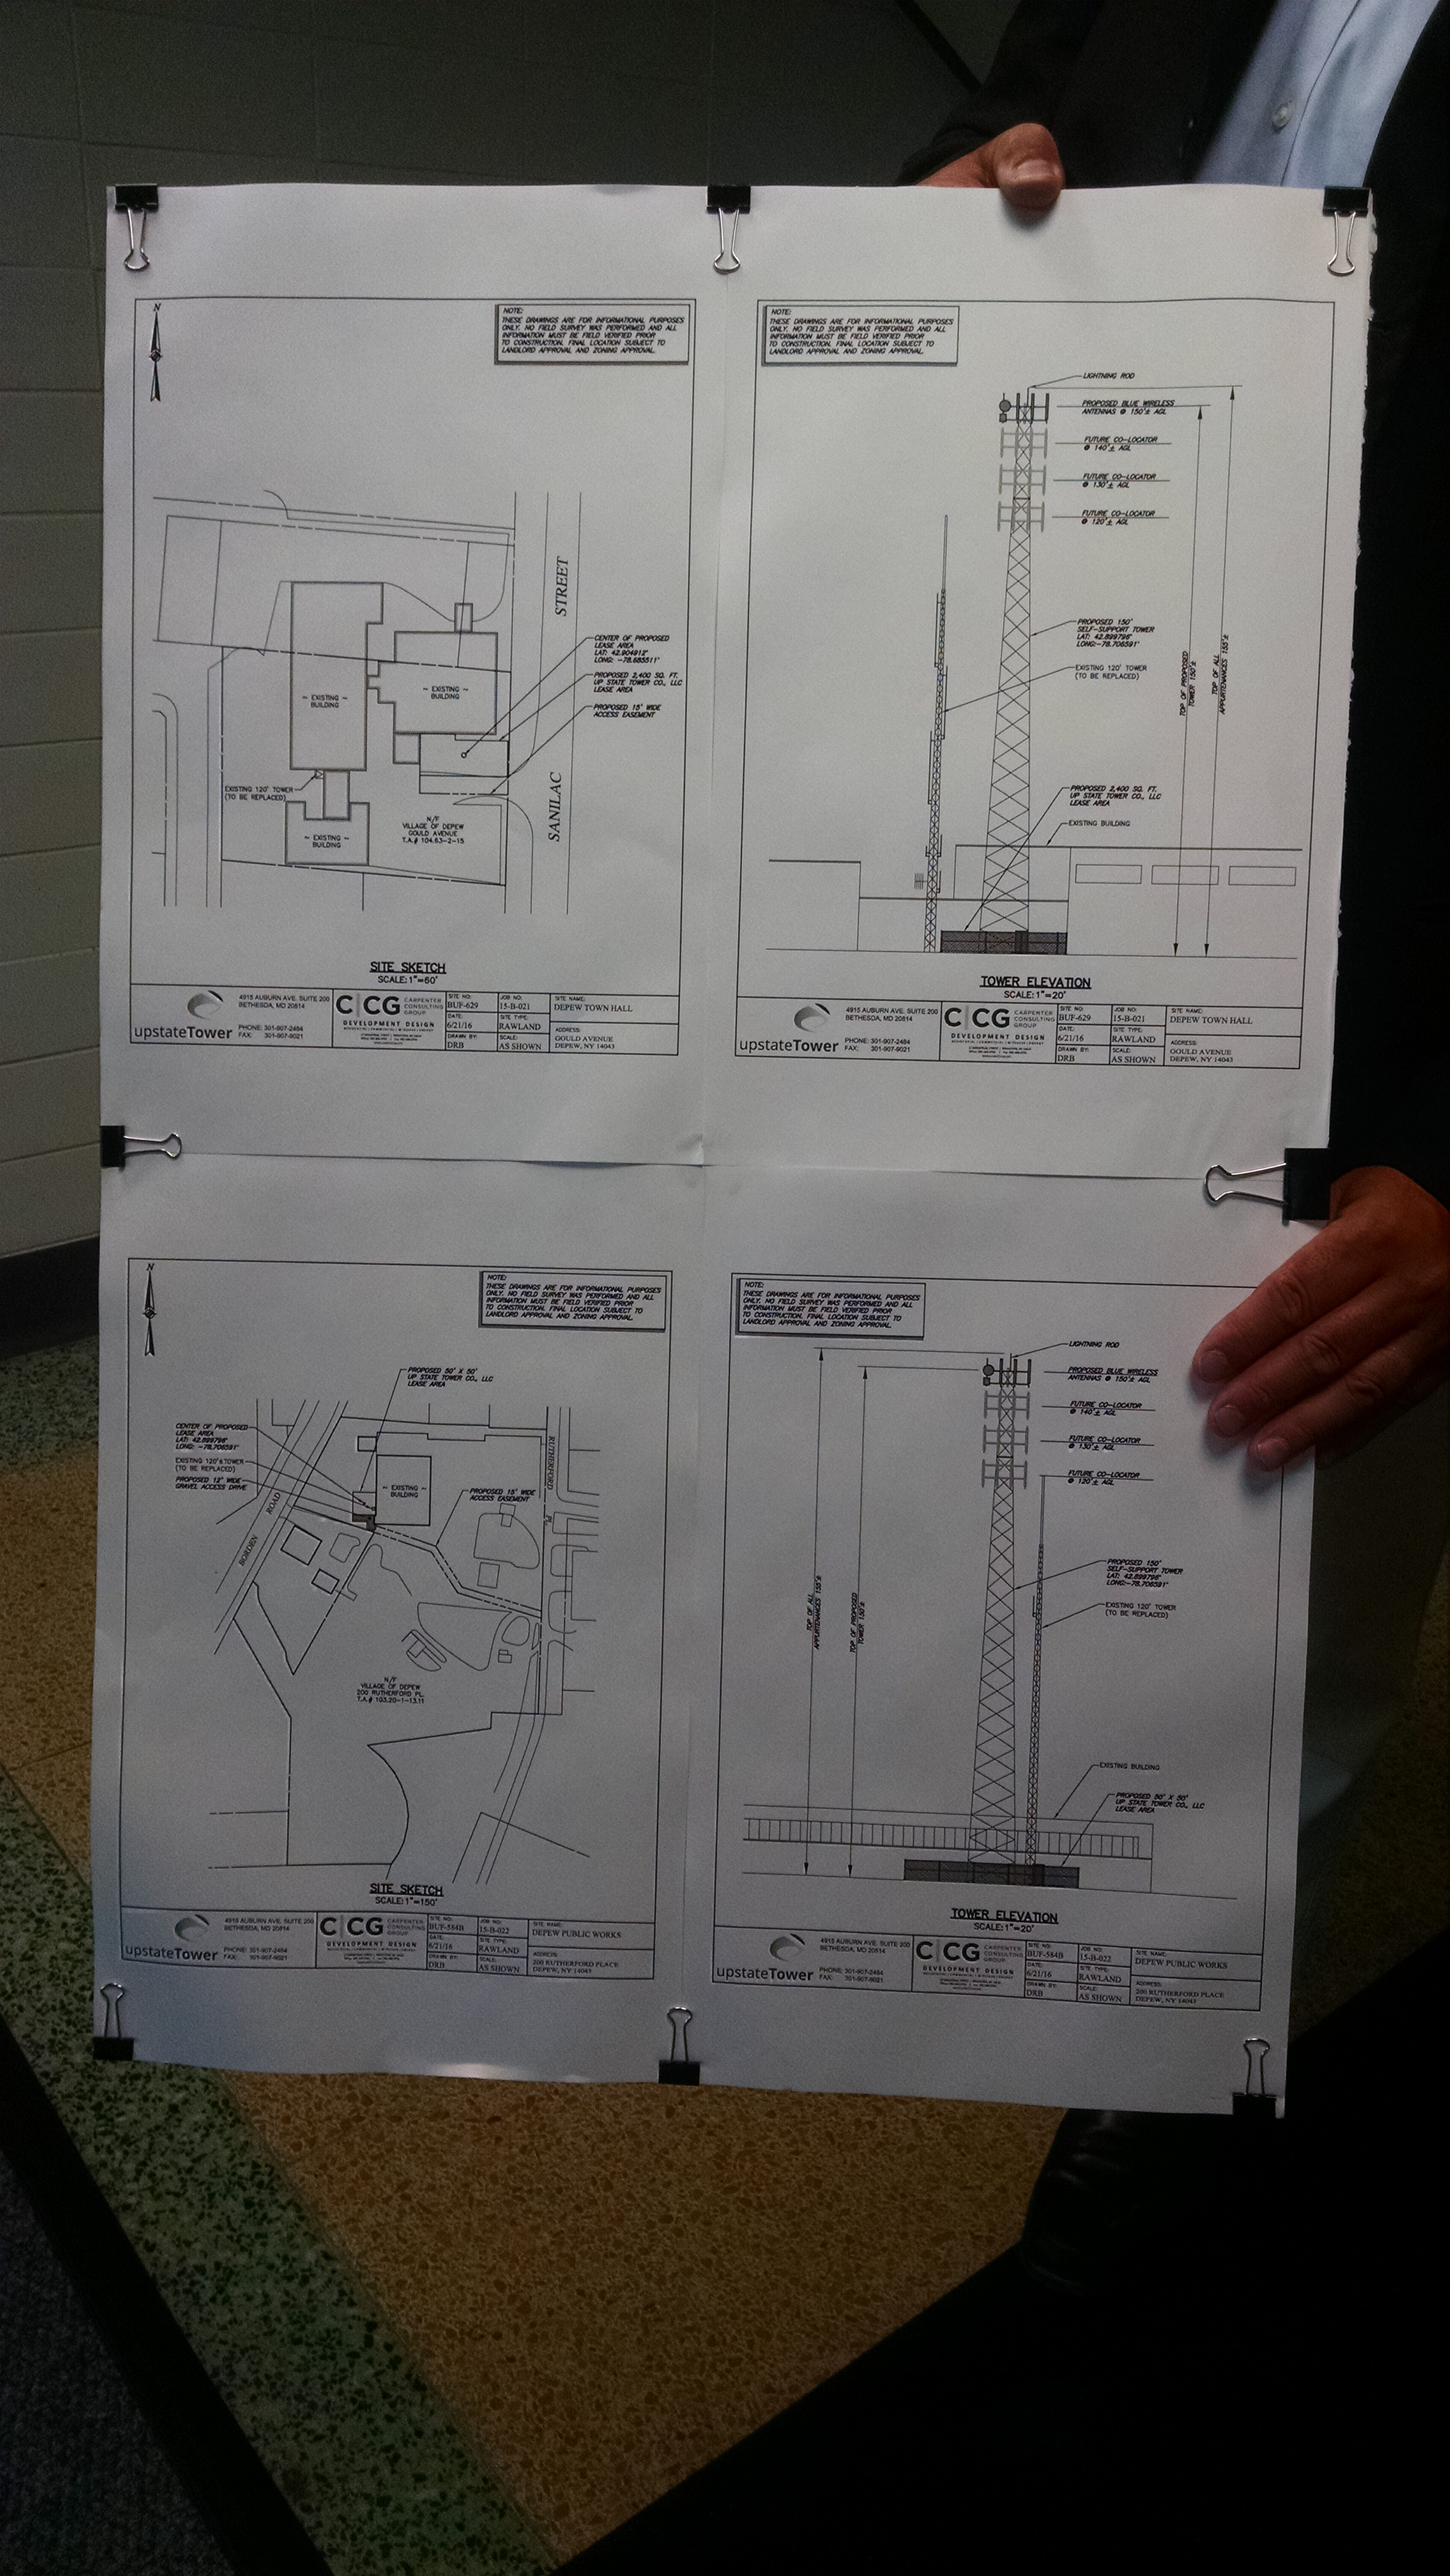 Design plans for cell towers proposed for the Municipal and Department of Public Works buildings in the Village of Depew.